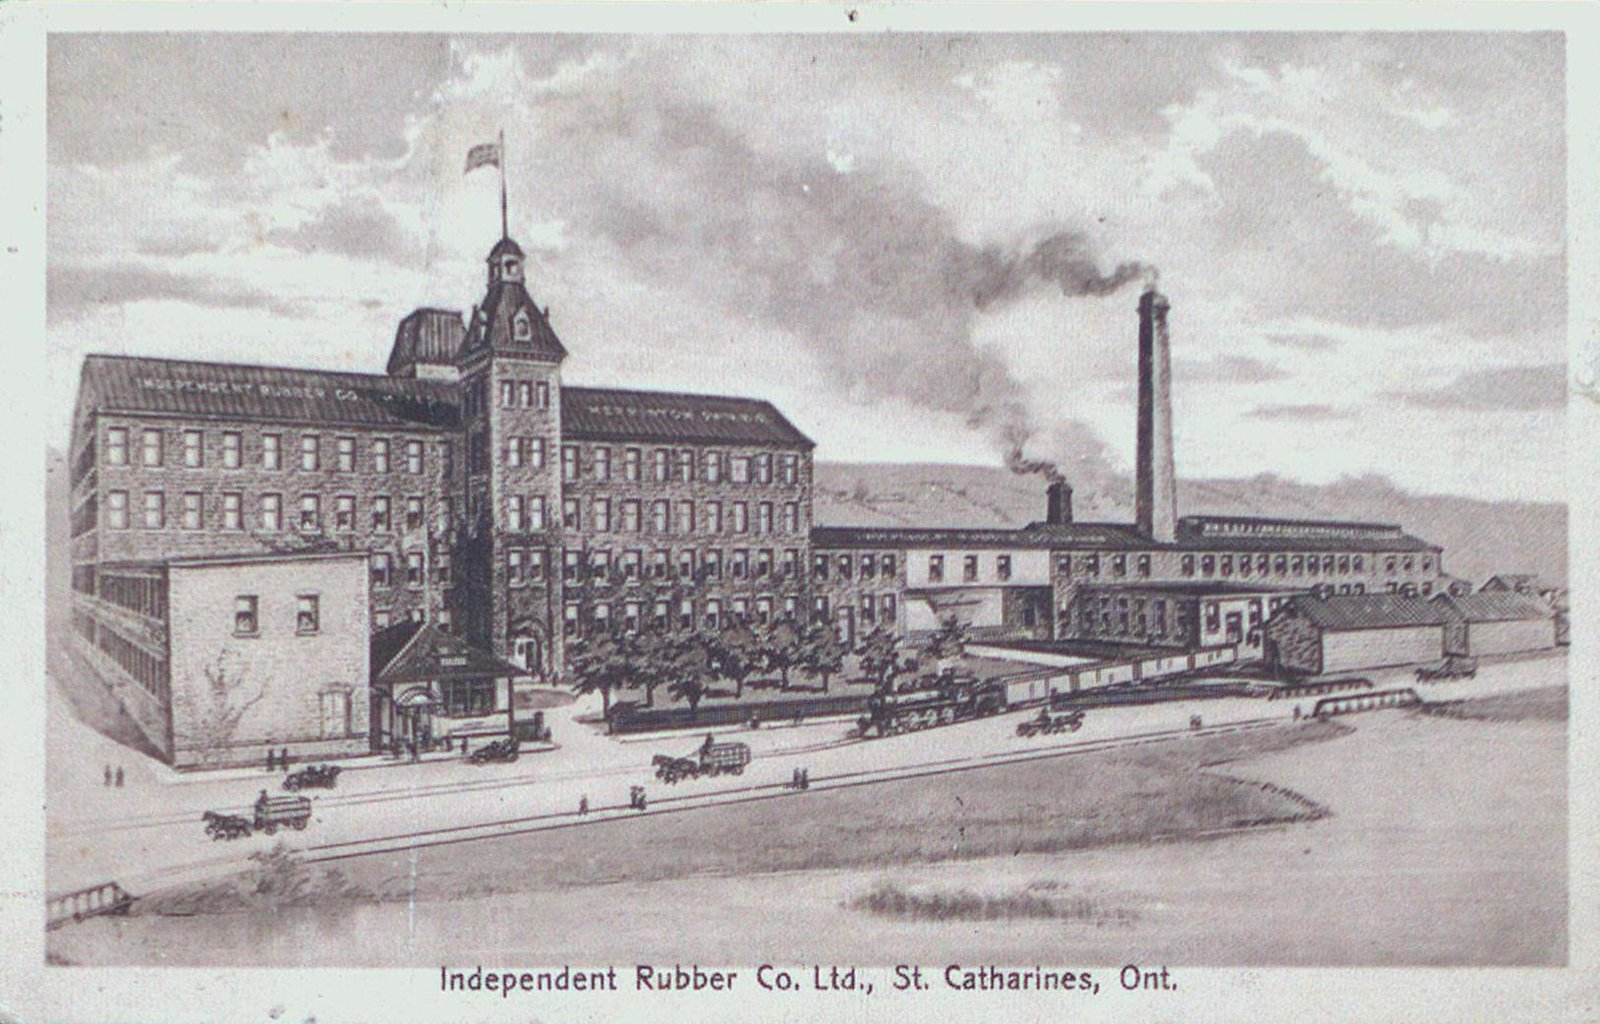 Independent Rubber Company